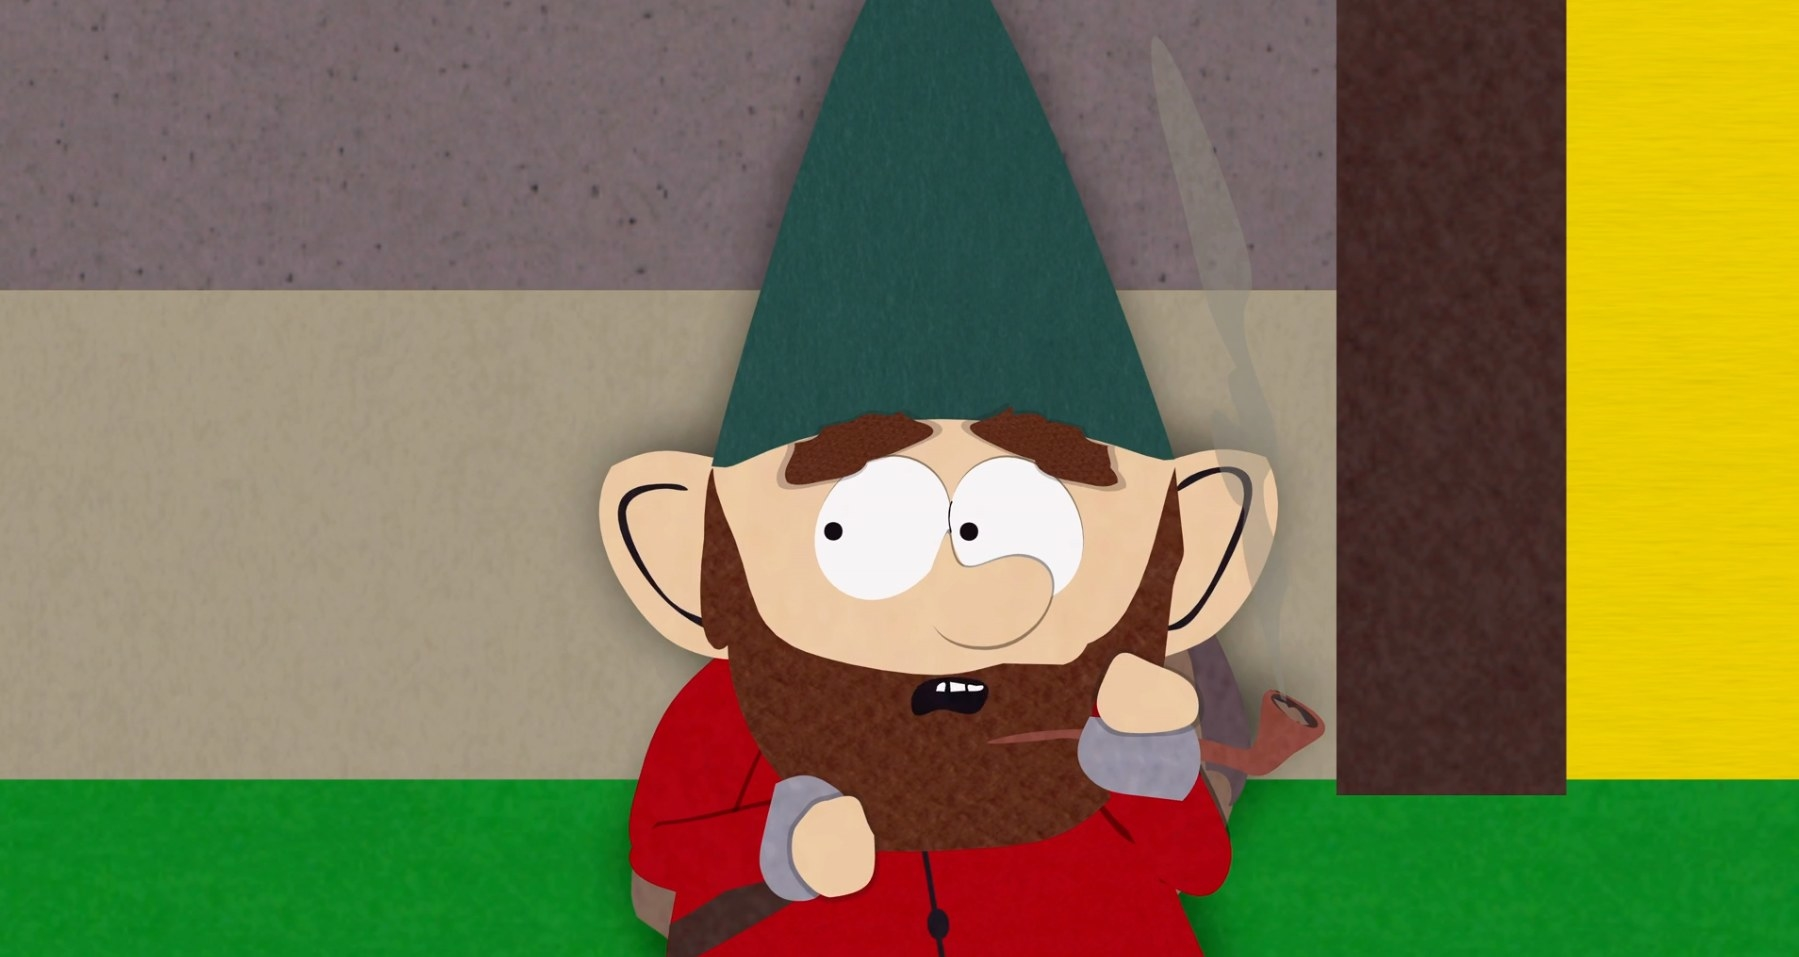 Underpants gnome smokes pipe